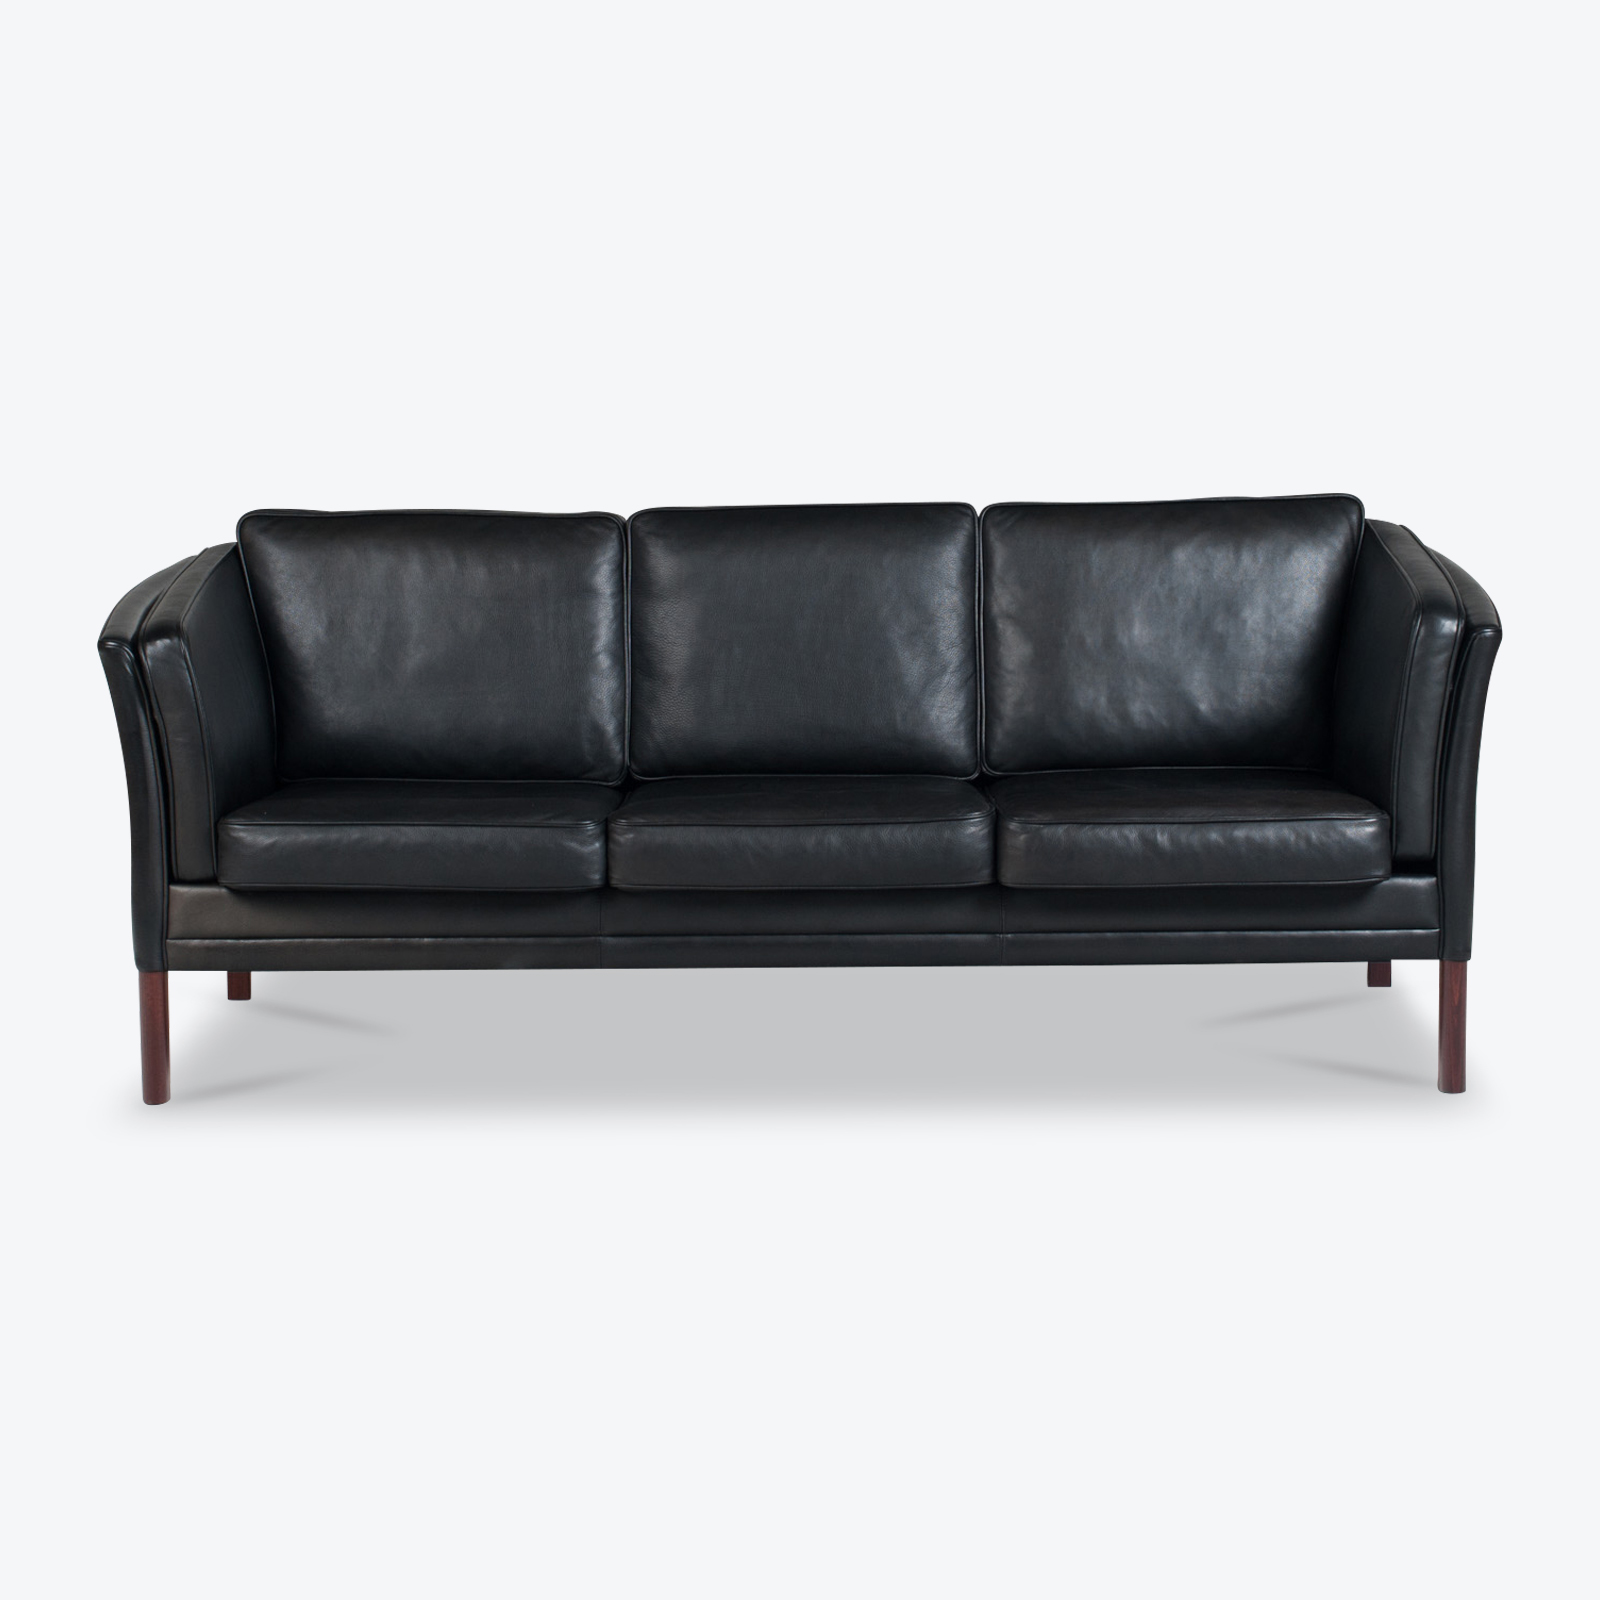 3 Seat Sofa In Black Aniline Leather 1960s Denmark 01